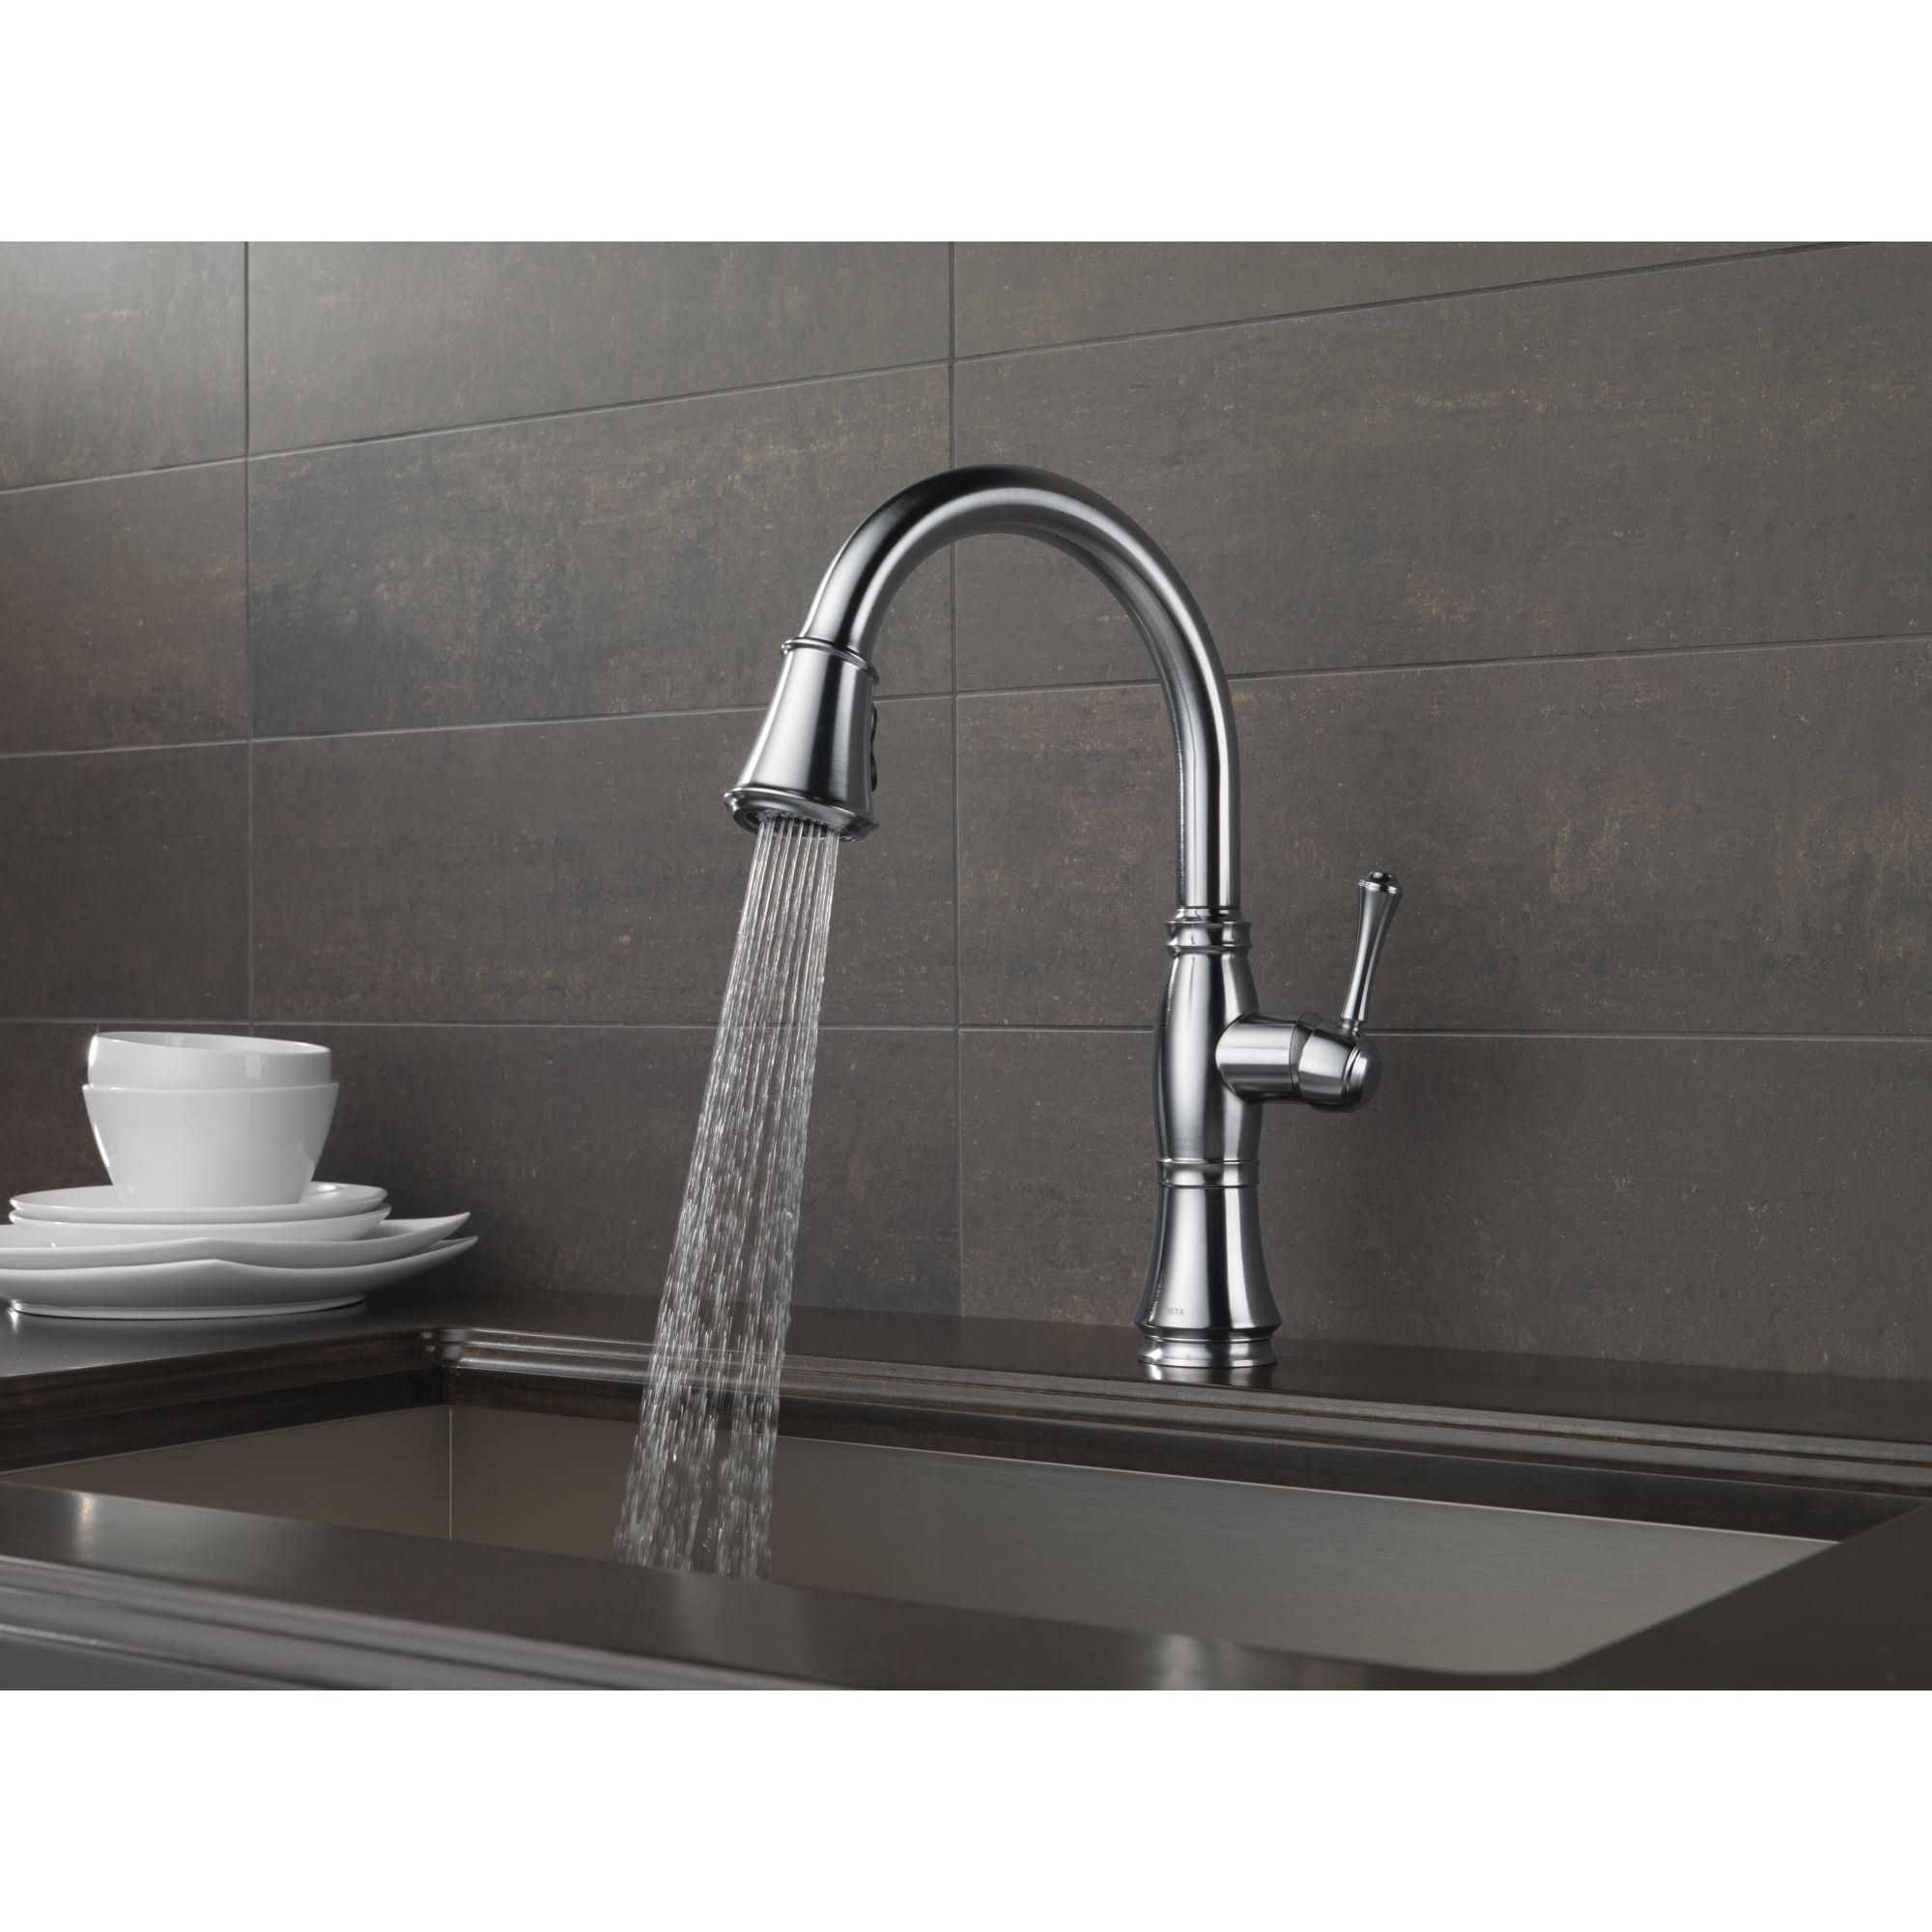 docking pull out spray faucet for the kitchen